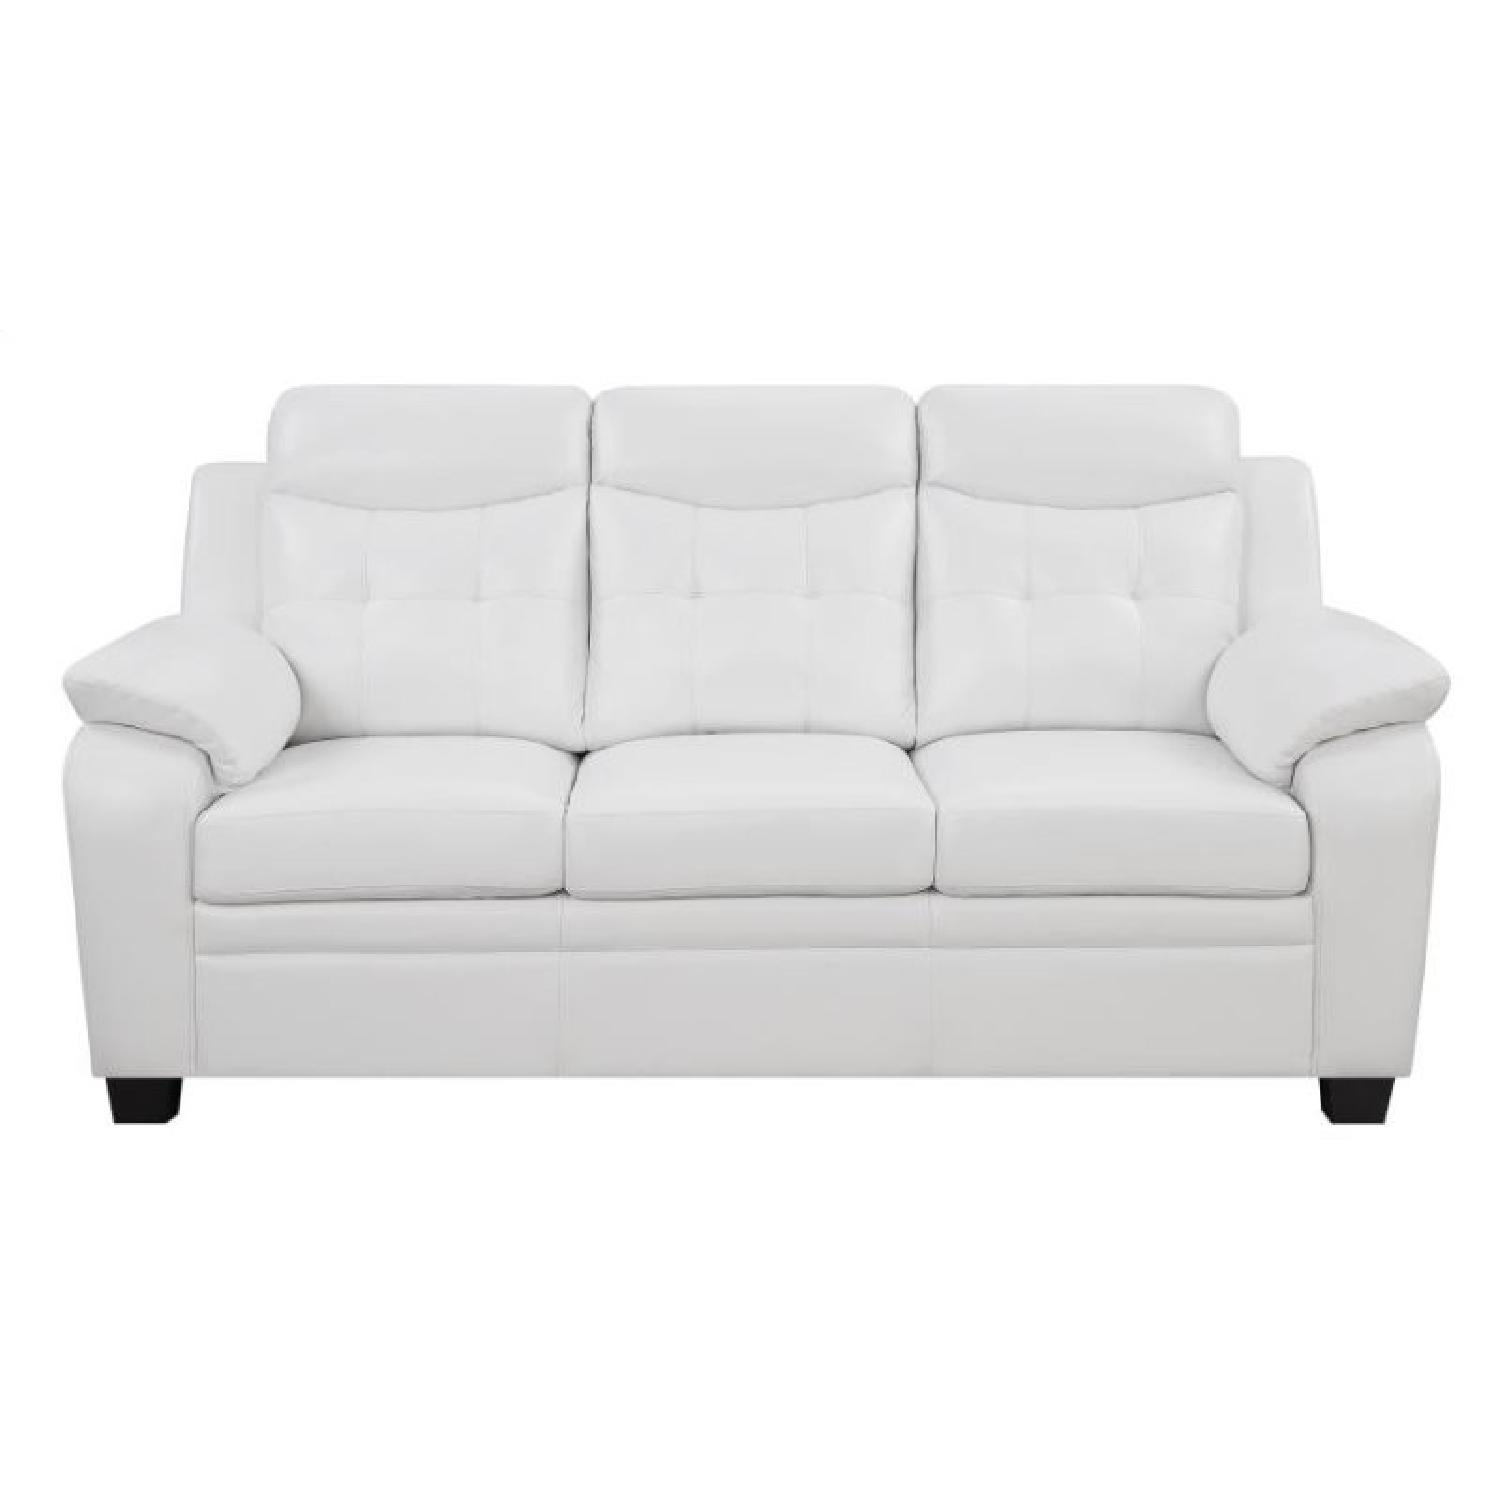 Casual Style Sofa in White Leatherette w/ Arm & Headrests